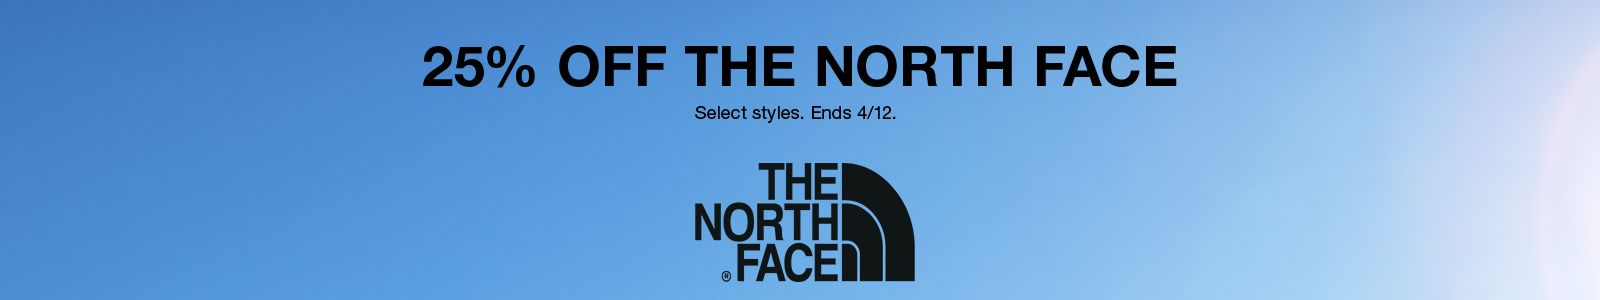 25% Off The North Face, Select styles, Ends 4/12